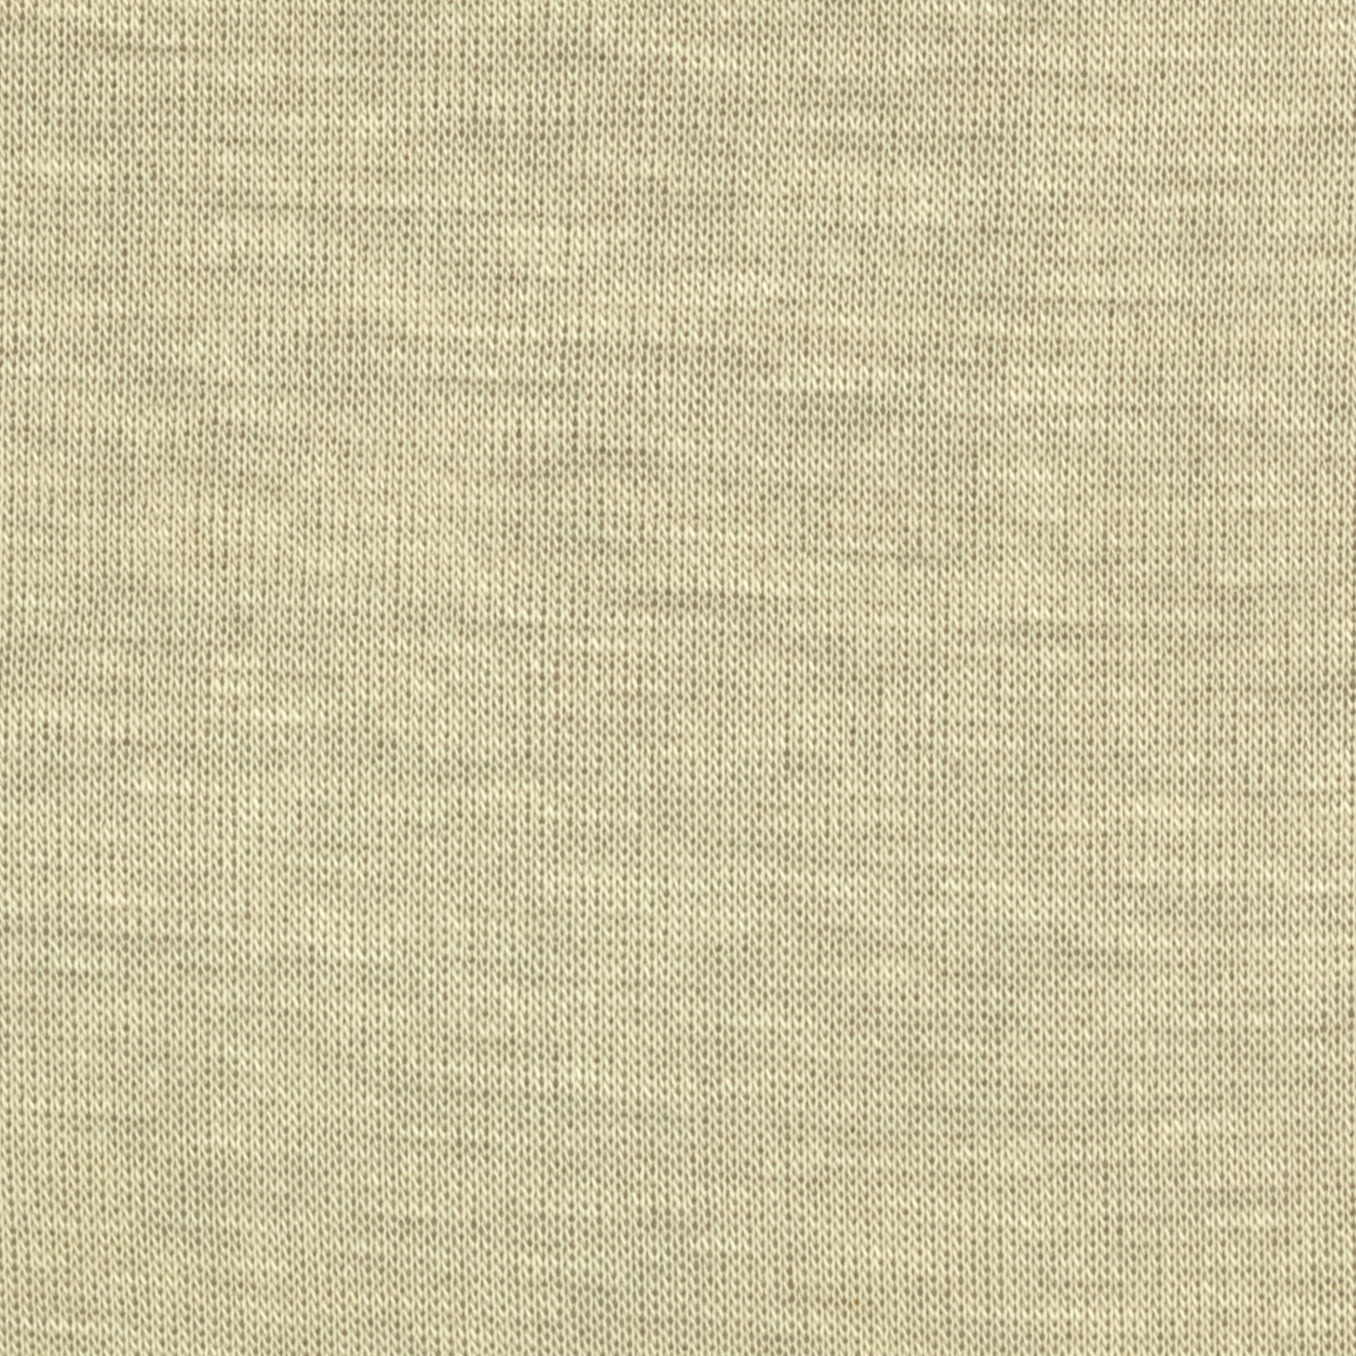 Stretch Tissue Hatchi Knit Cream Fabric